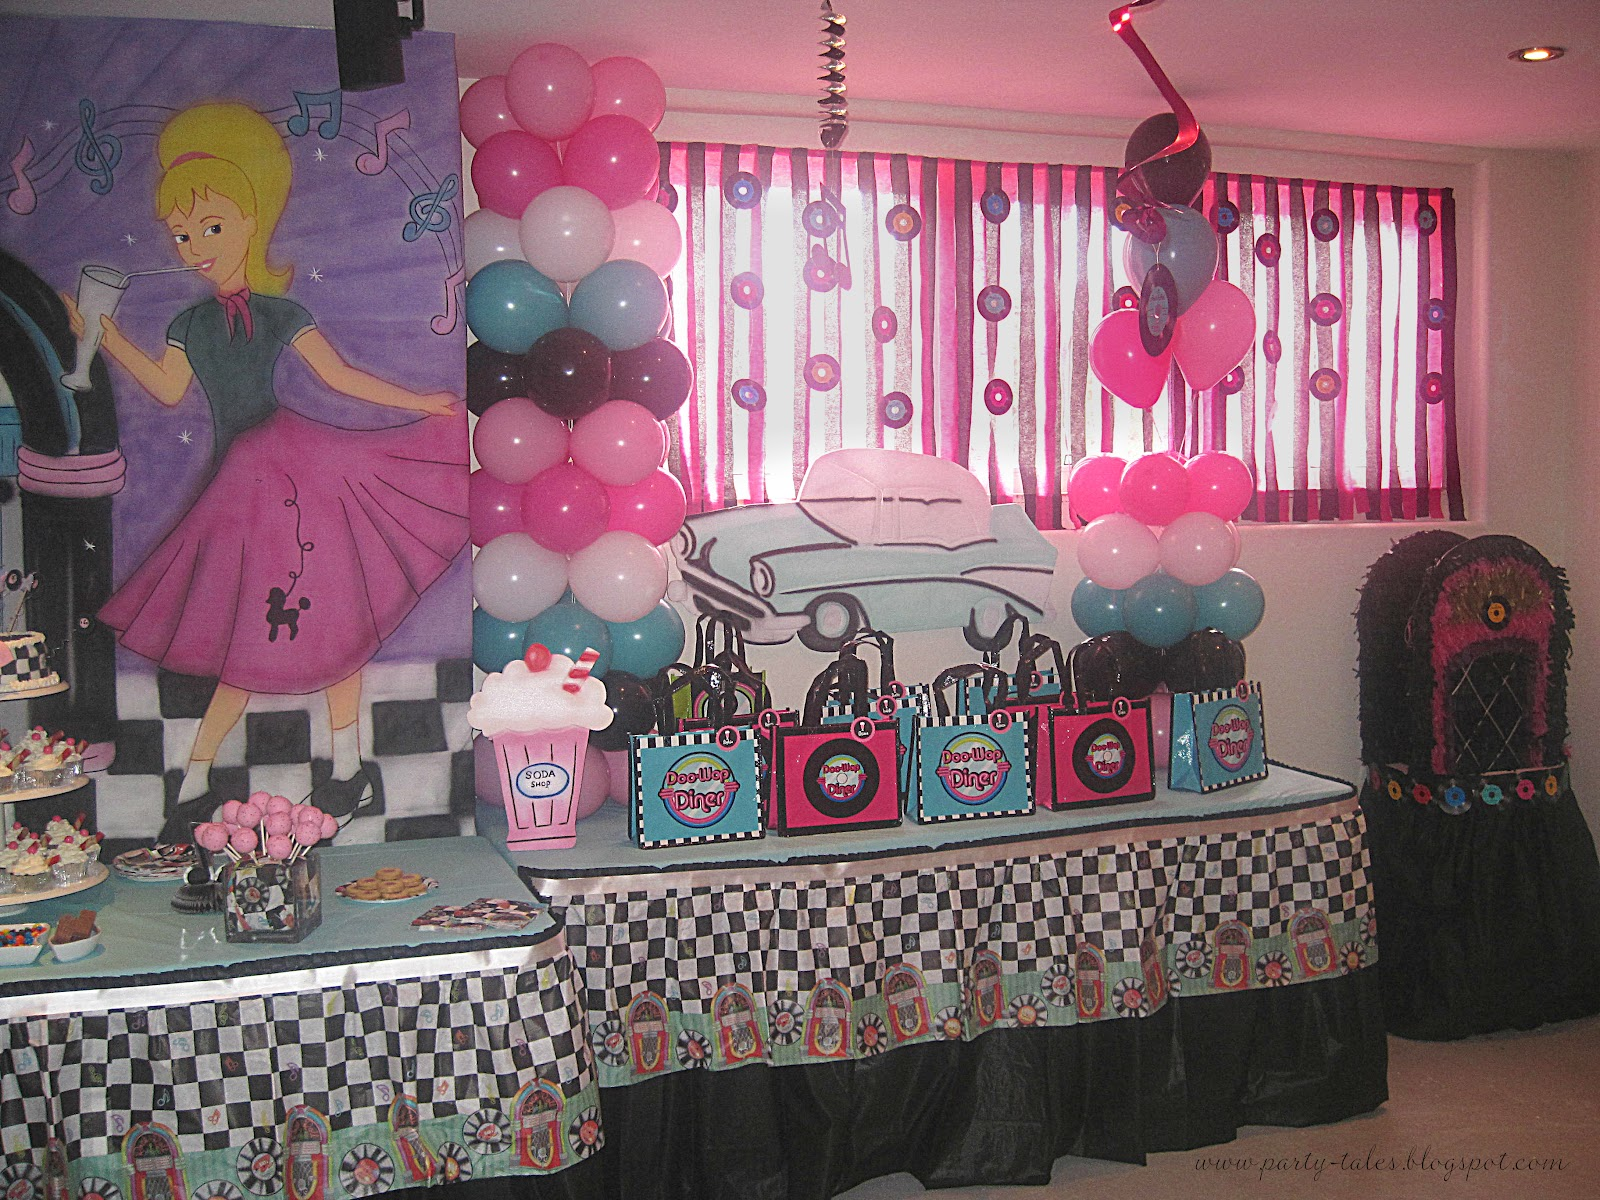 Party tales birthday party 50 39 s diner sock hop party for 50 s theme decoration ideas